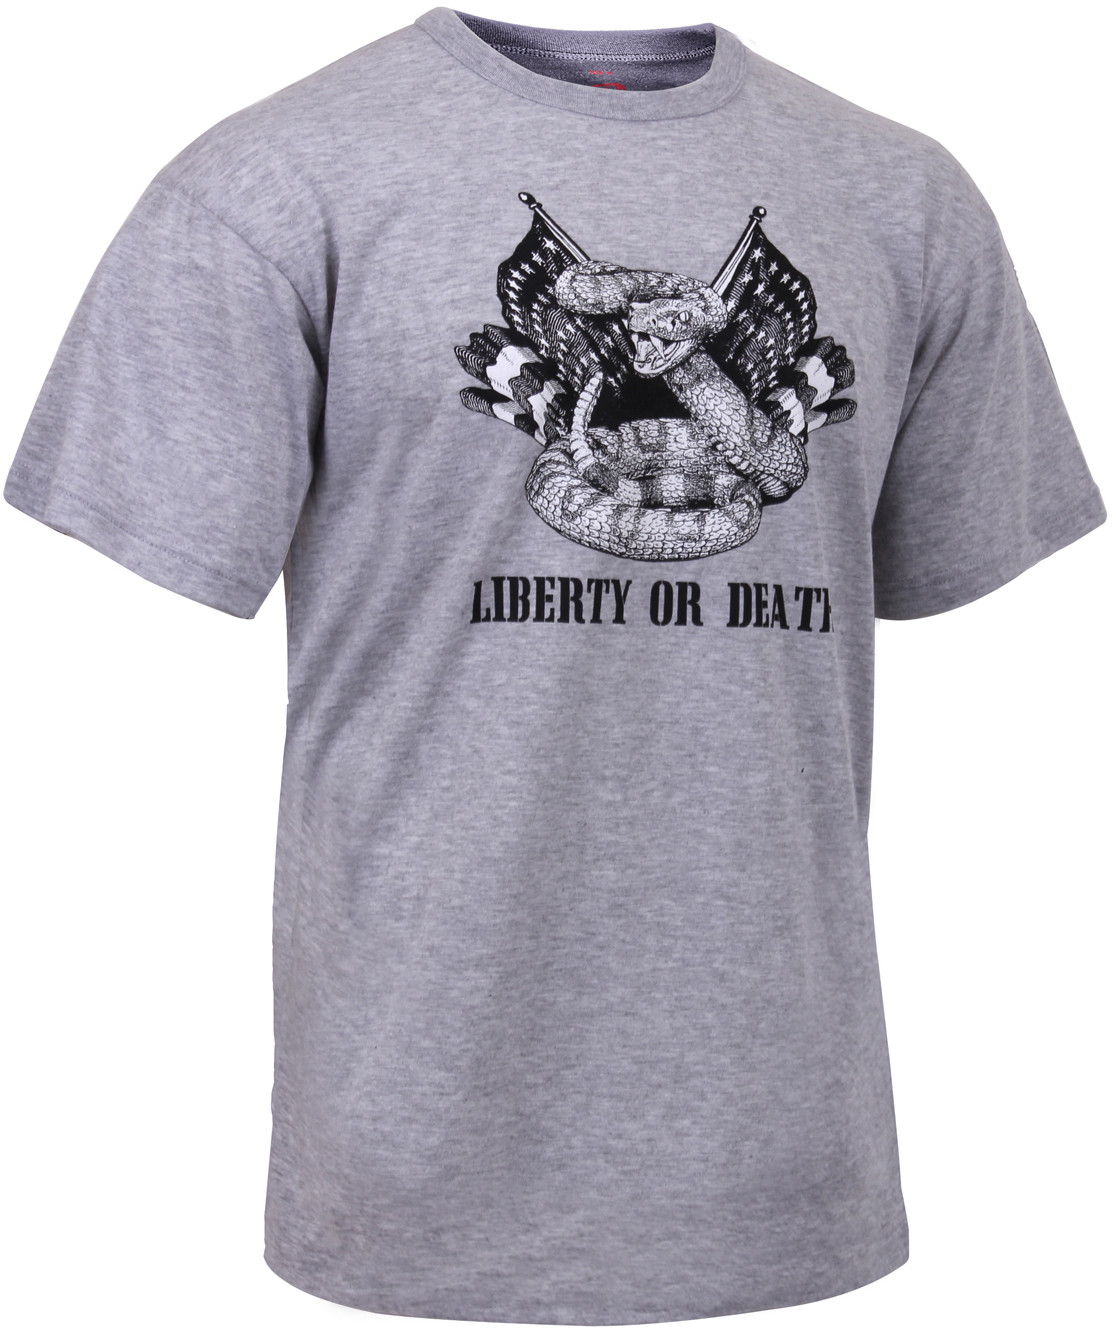 Grey Liberty or Death Revolutionary War T-Shirt 582d0244484